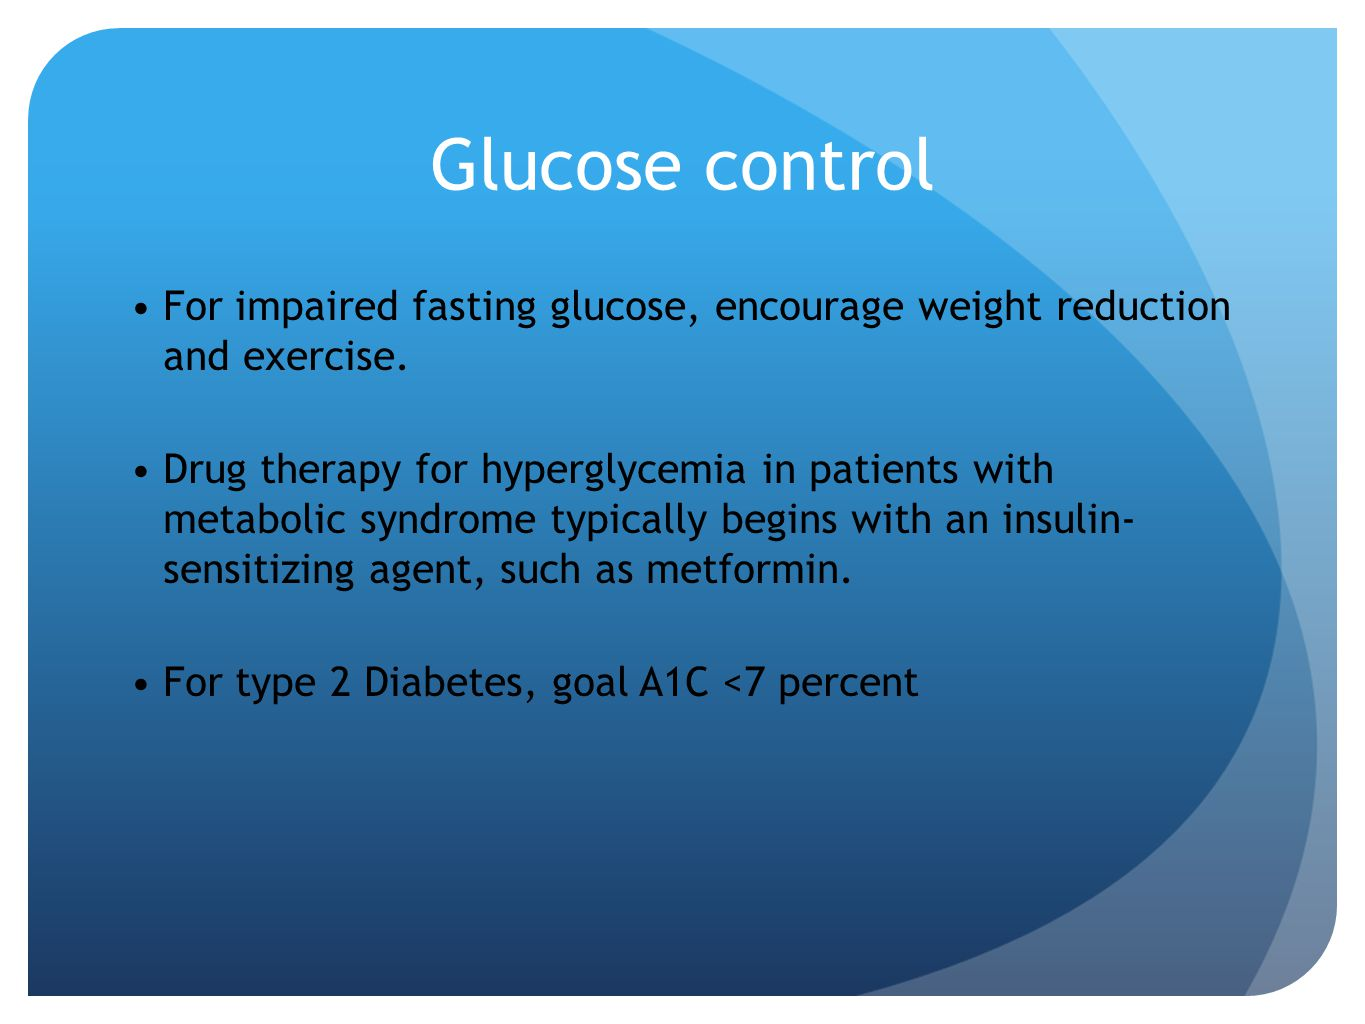 Glucose control For impaired fasting glucose, encourage weight reduction and exercise.